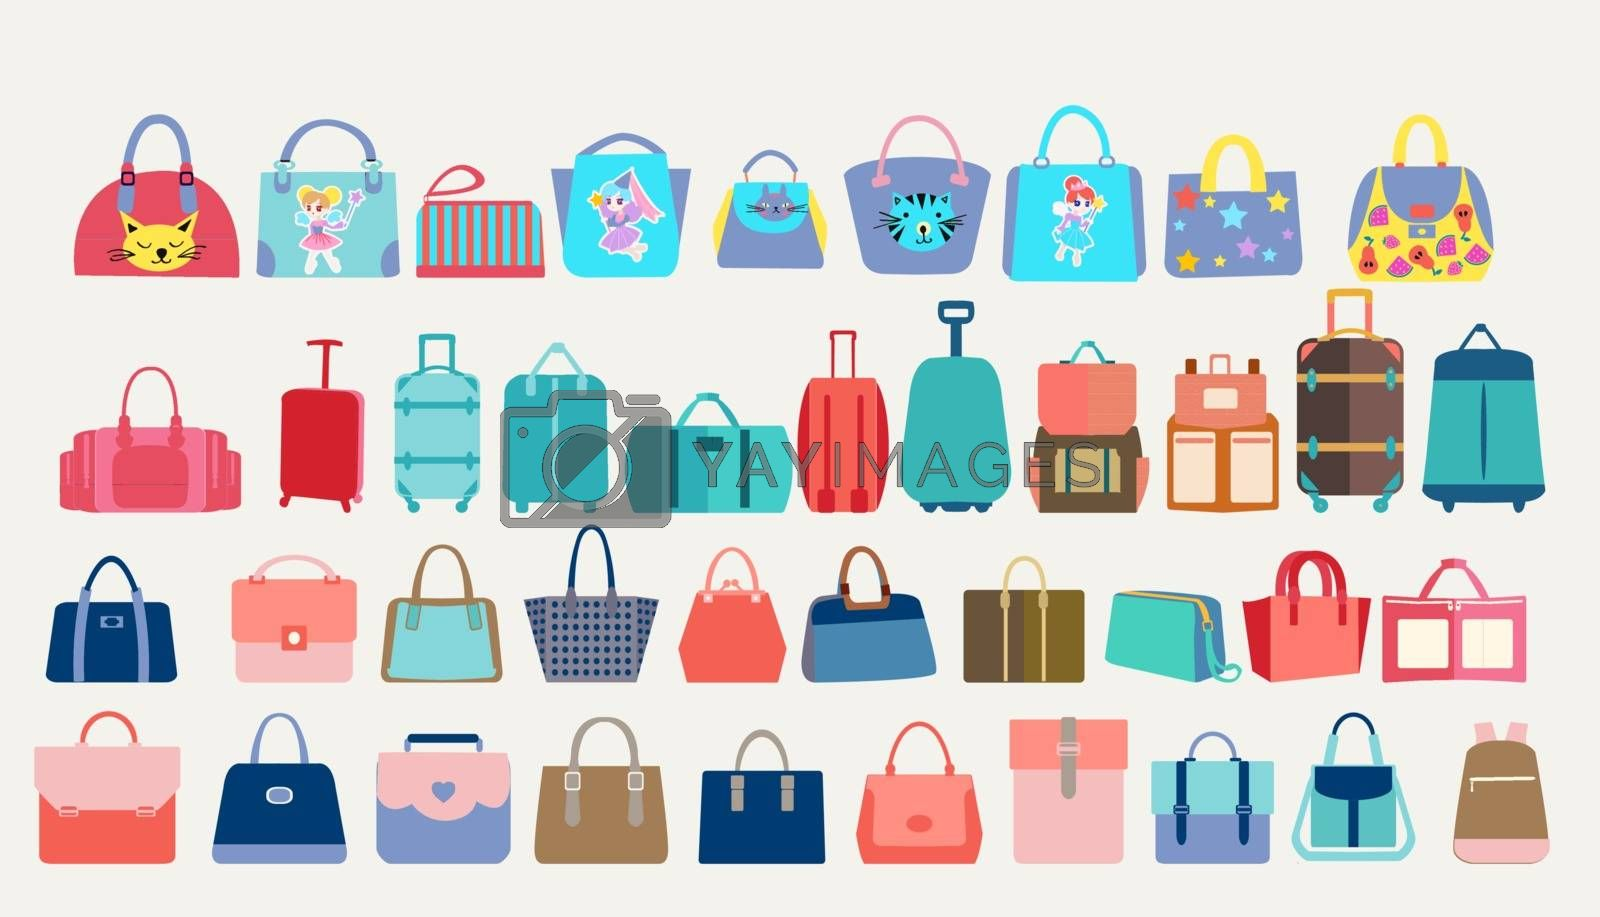 Big Set of colorful stylish cartoon women bags, travel bags and tourist luggage. Vector symbols of fashion modern leather accessories.